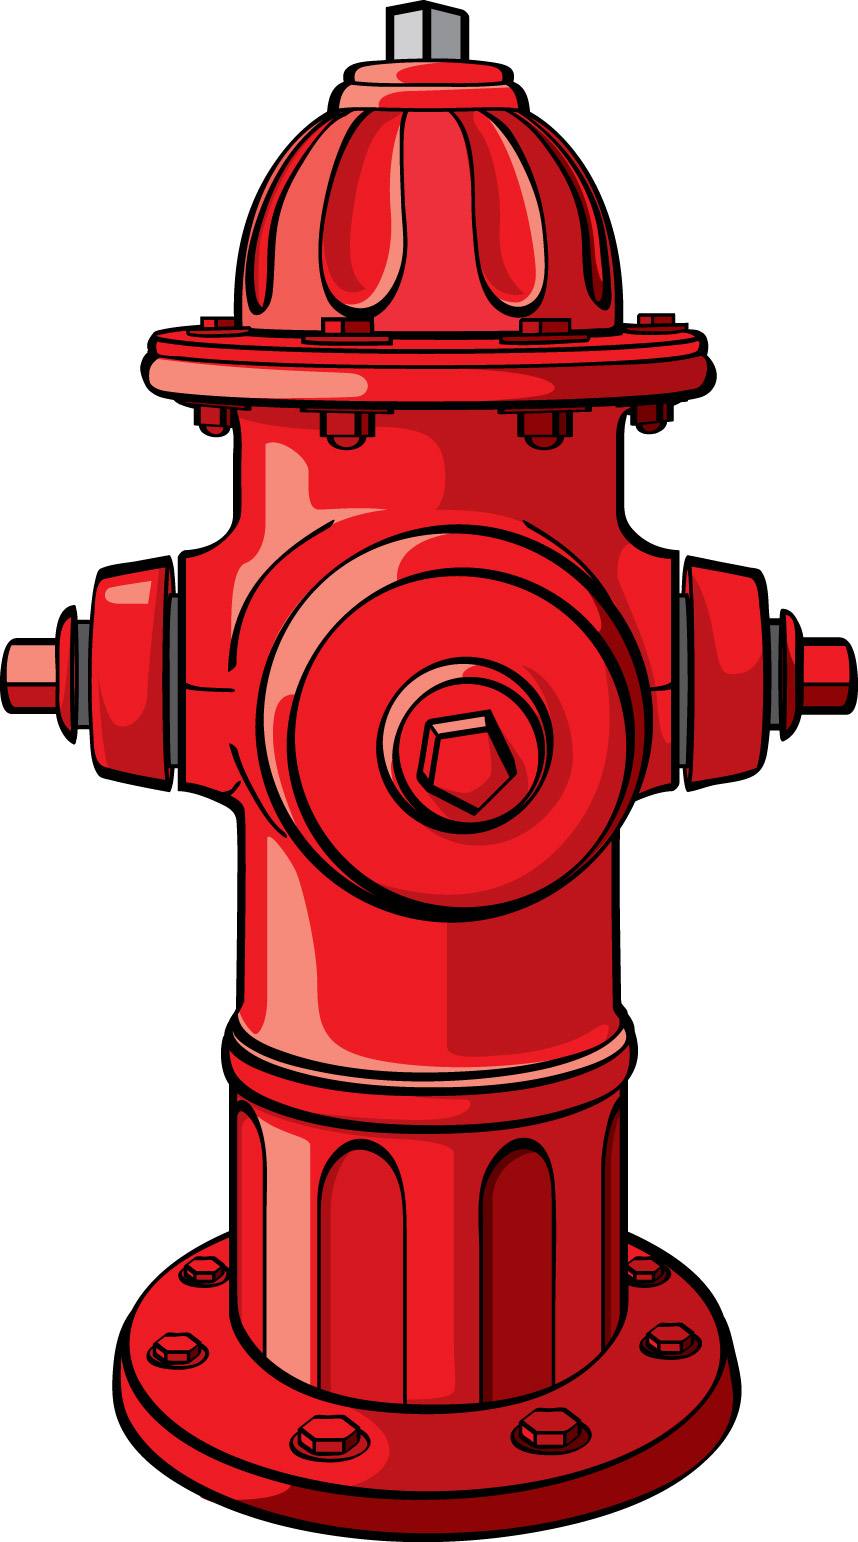 Clip Art Fire Hydrant Clip Art fire hydrant clipart kid the use of hydrants in city elyria is limited to fire